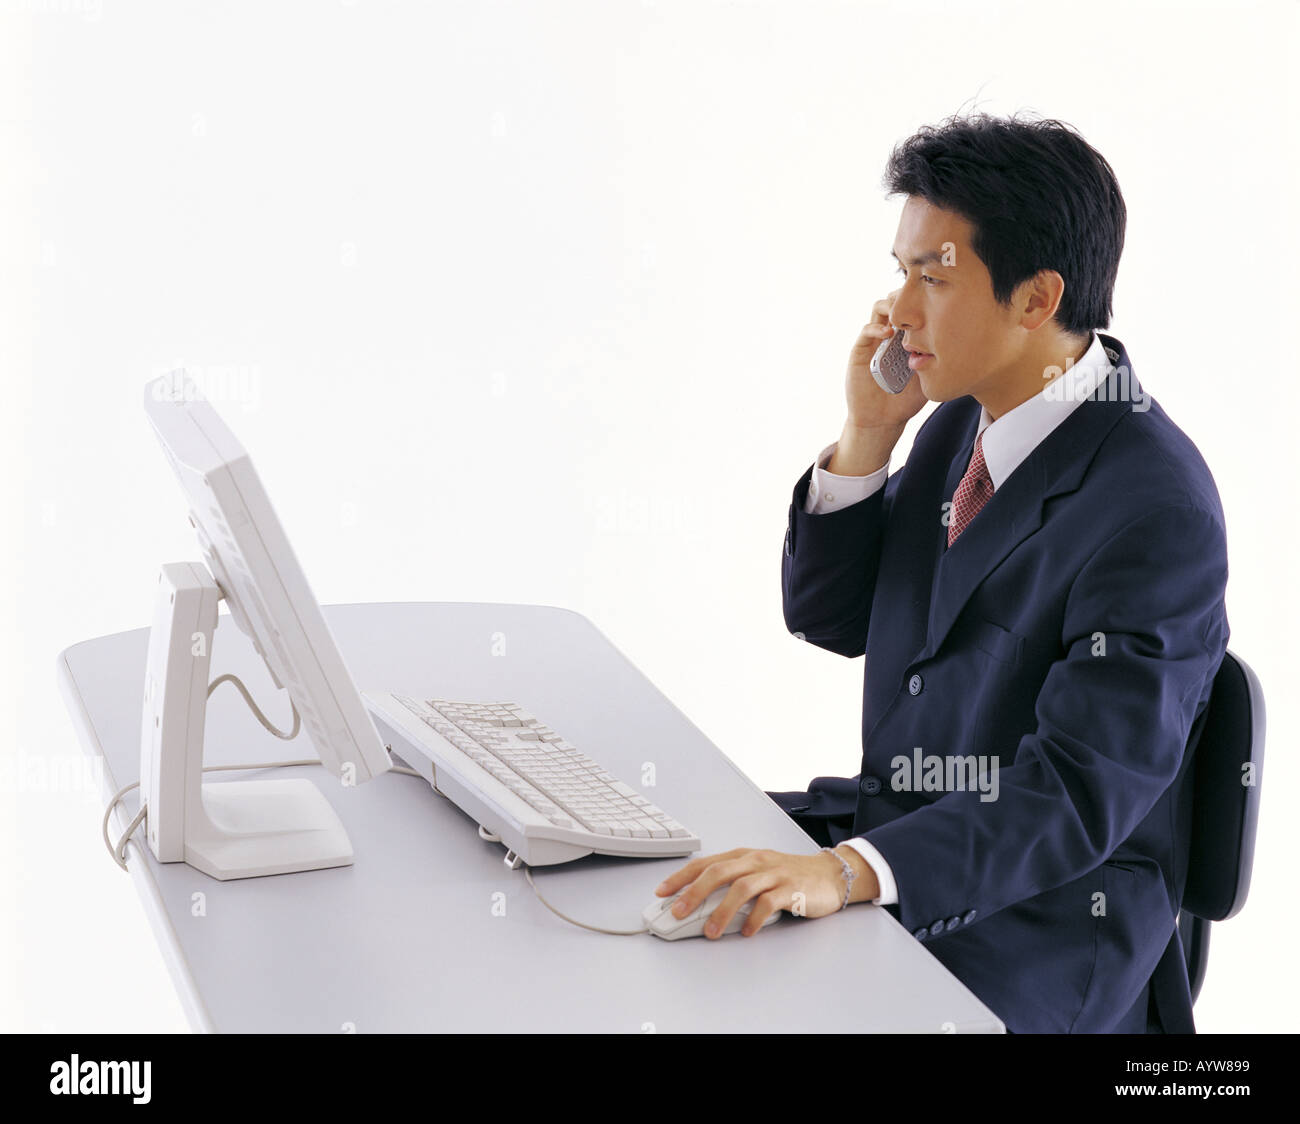 Office worker talking on a cell phone in front of computer Banque D'Images